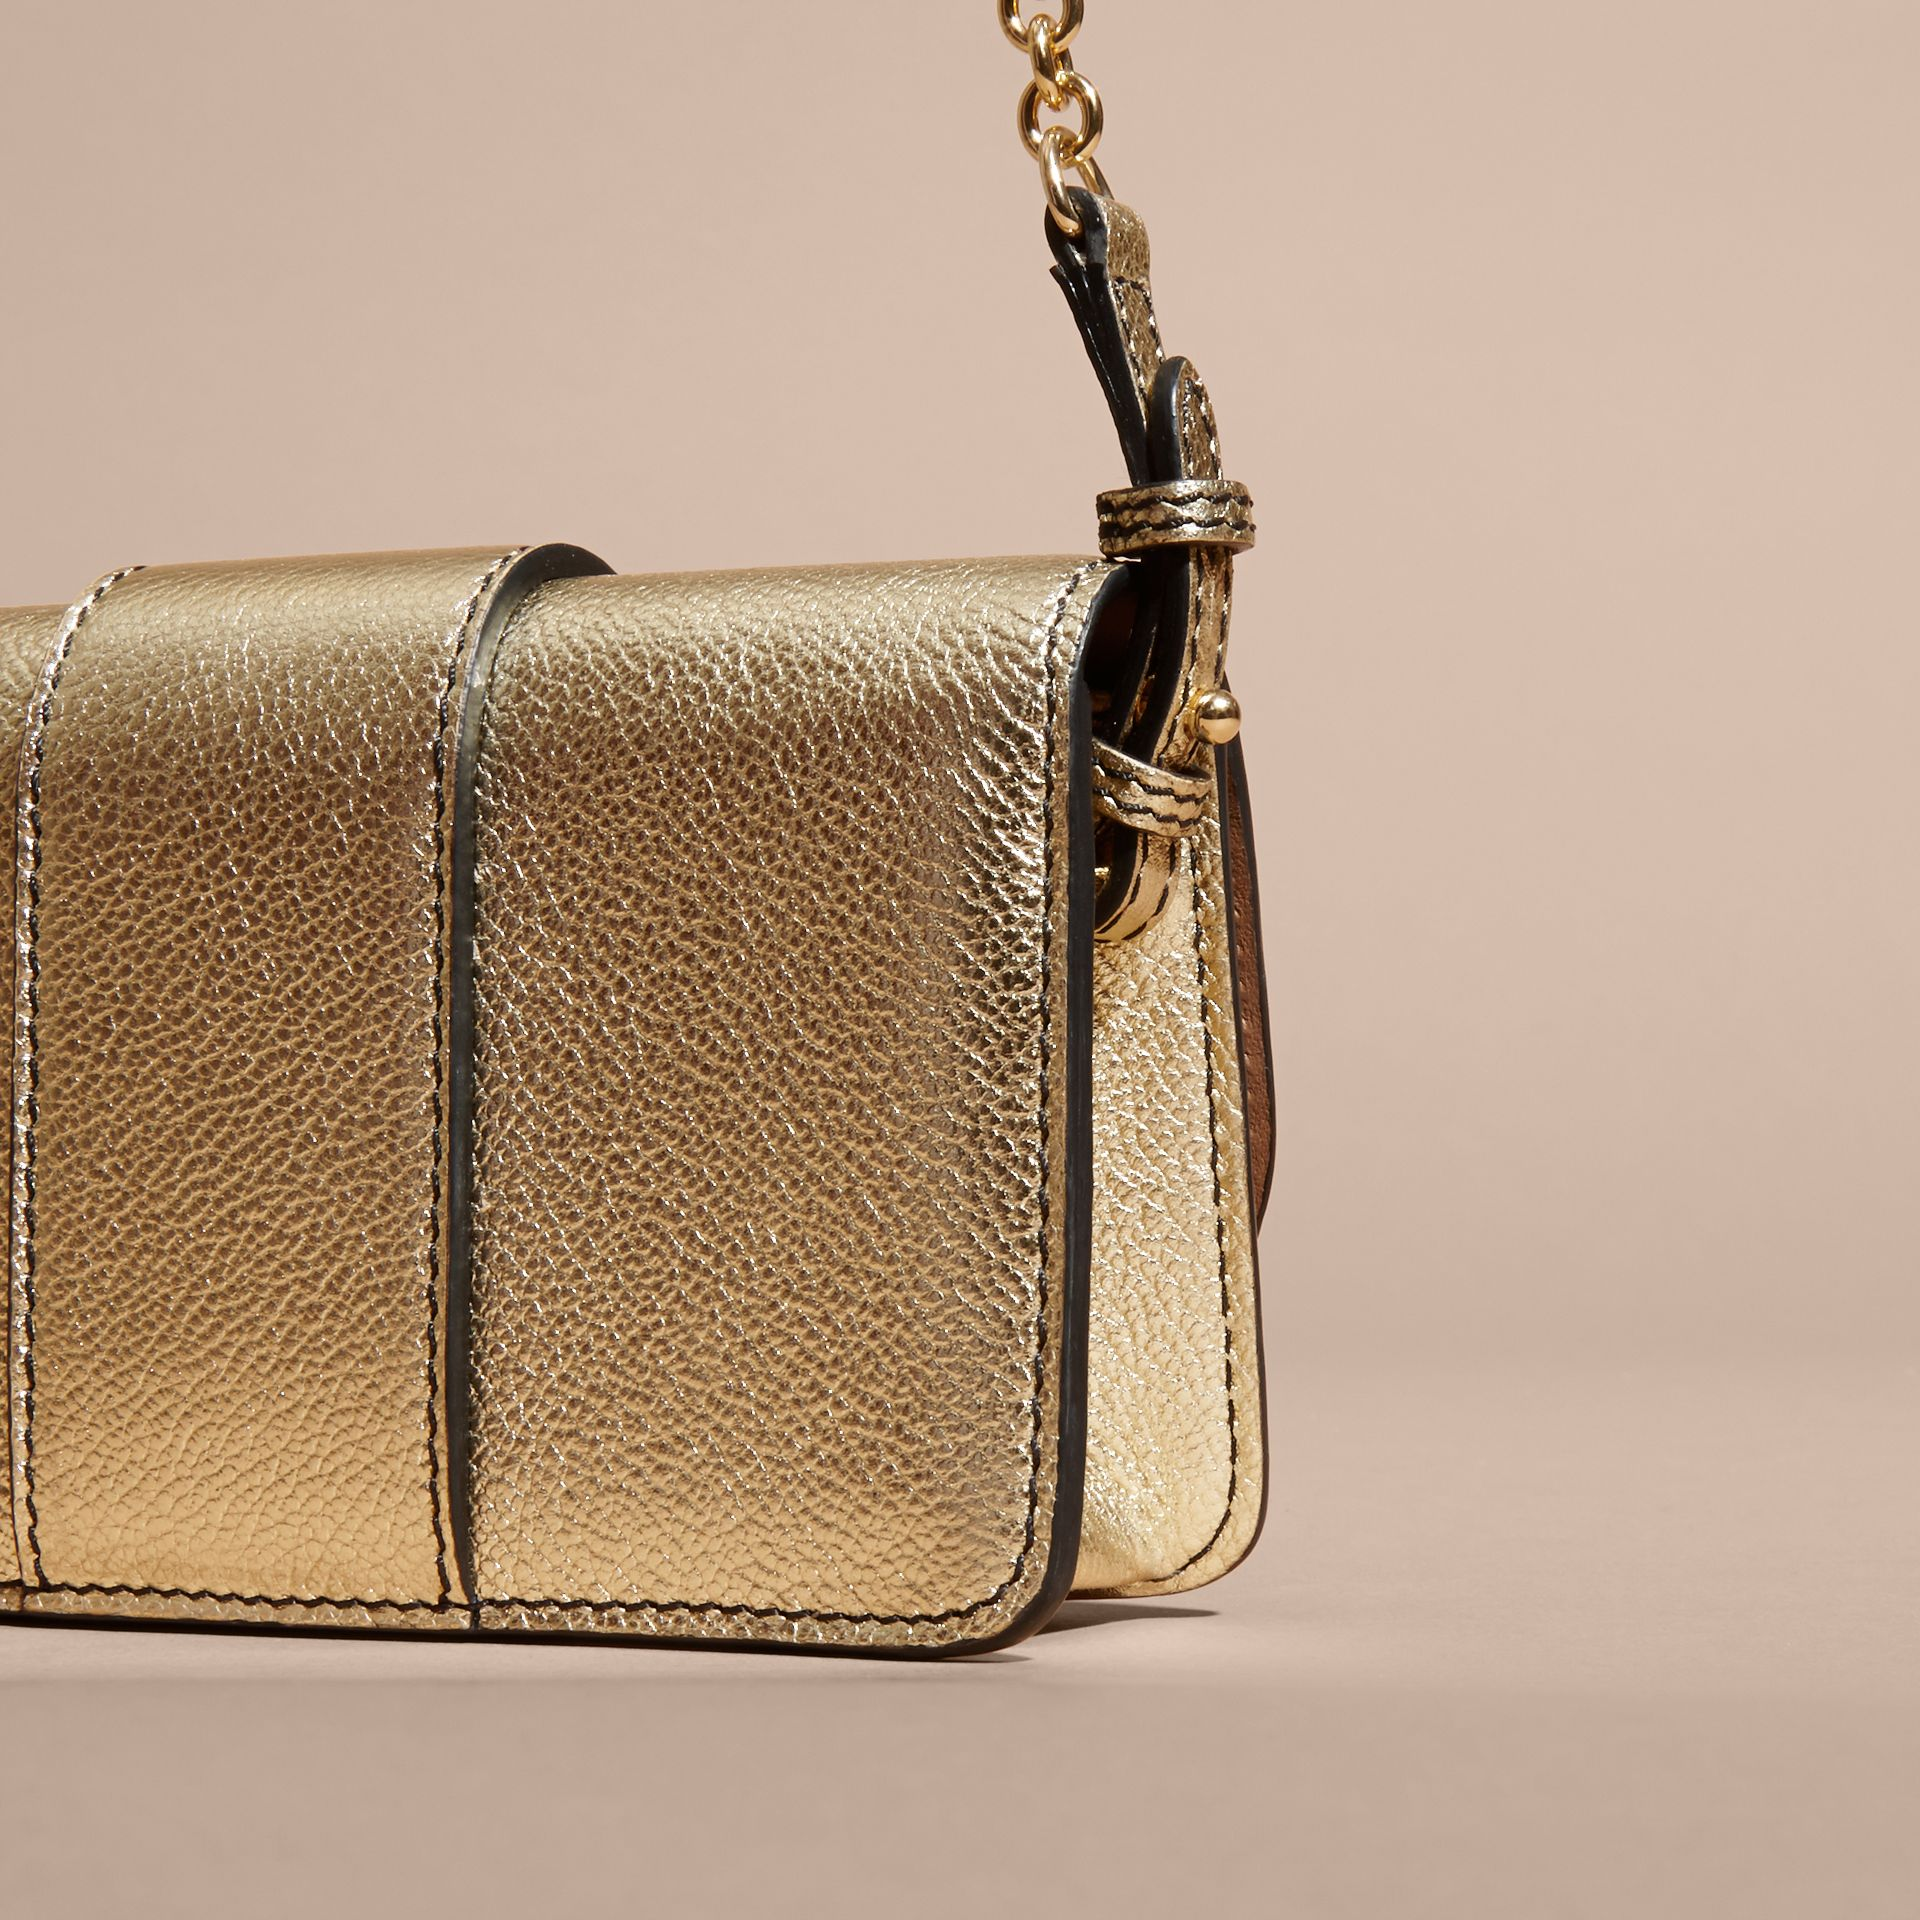 Gold The Mini Buckle Bag in Metallic Grainy Leather Gold - gallery image 7